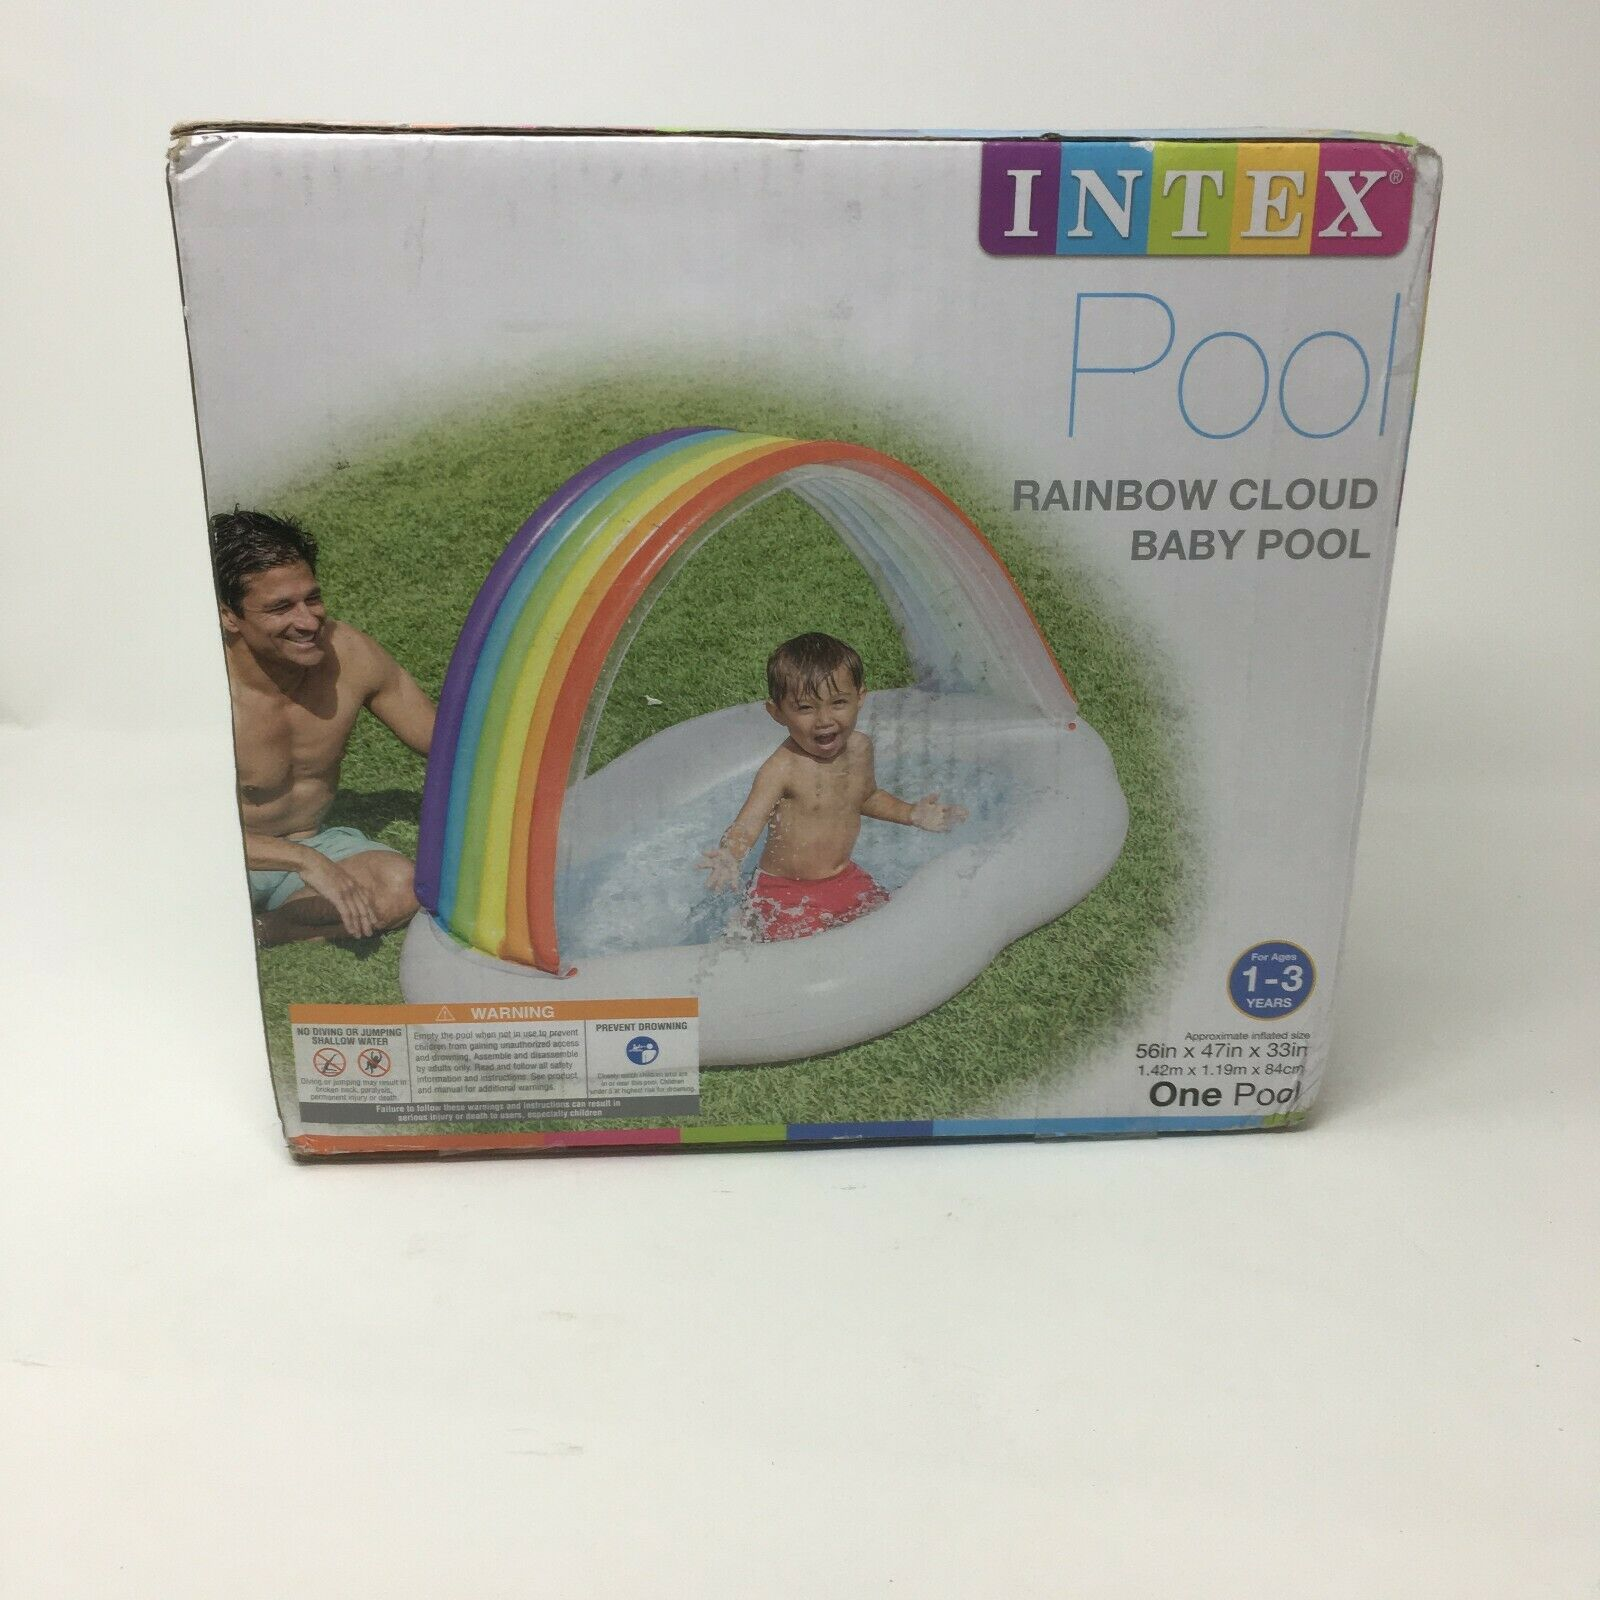 Intex Rainbow Cloud Inflatable Baby Pool, for Ages 1-3